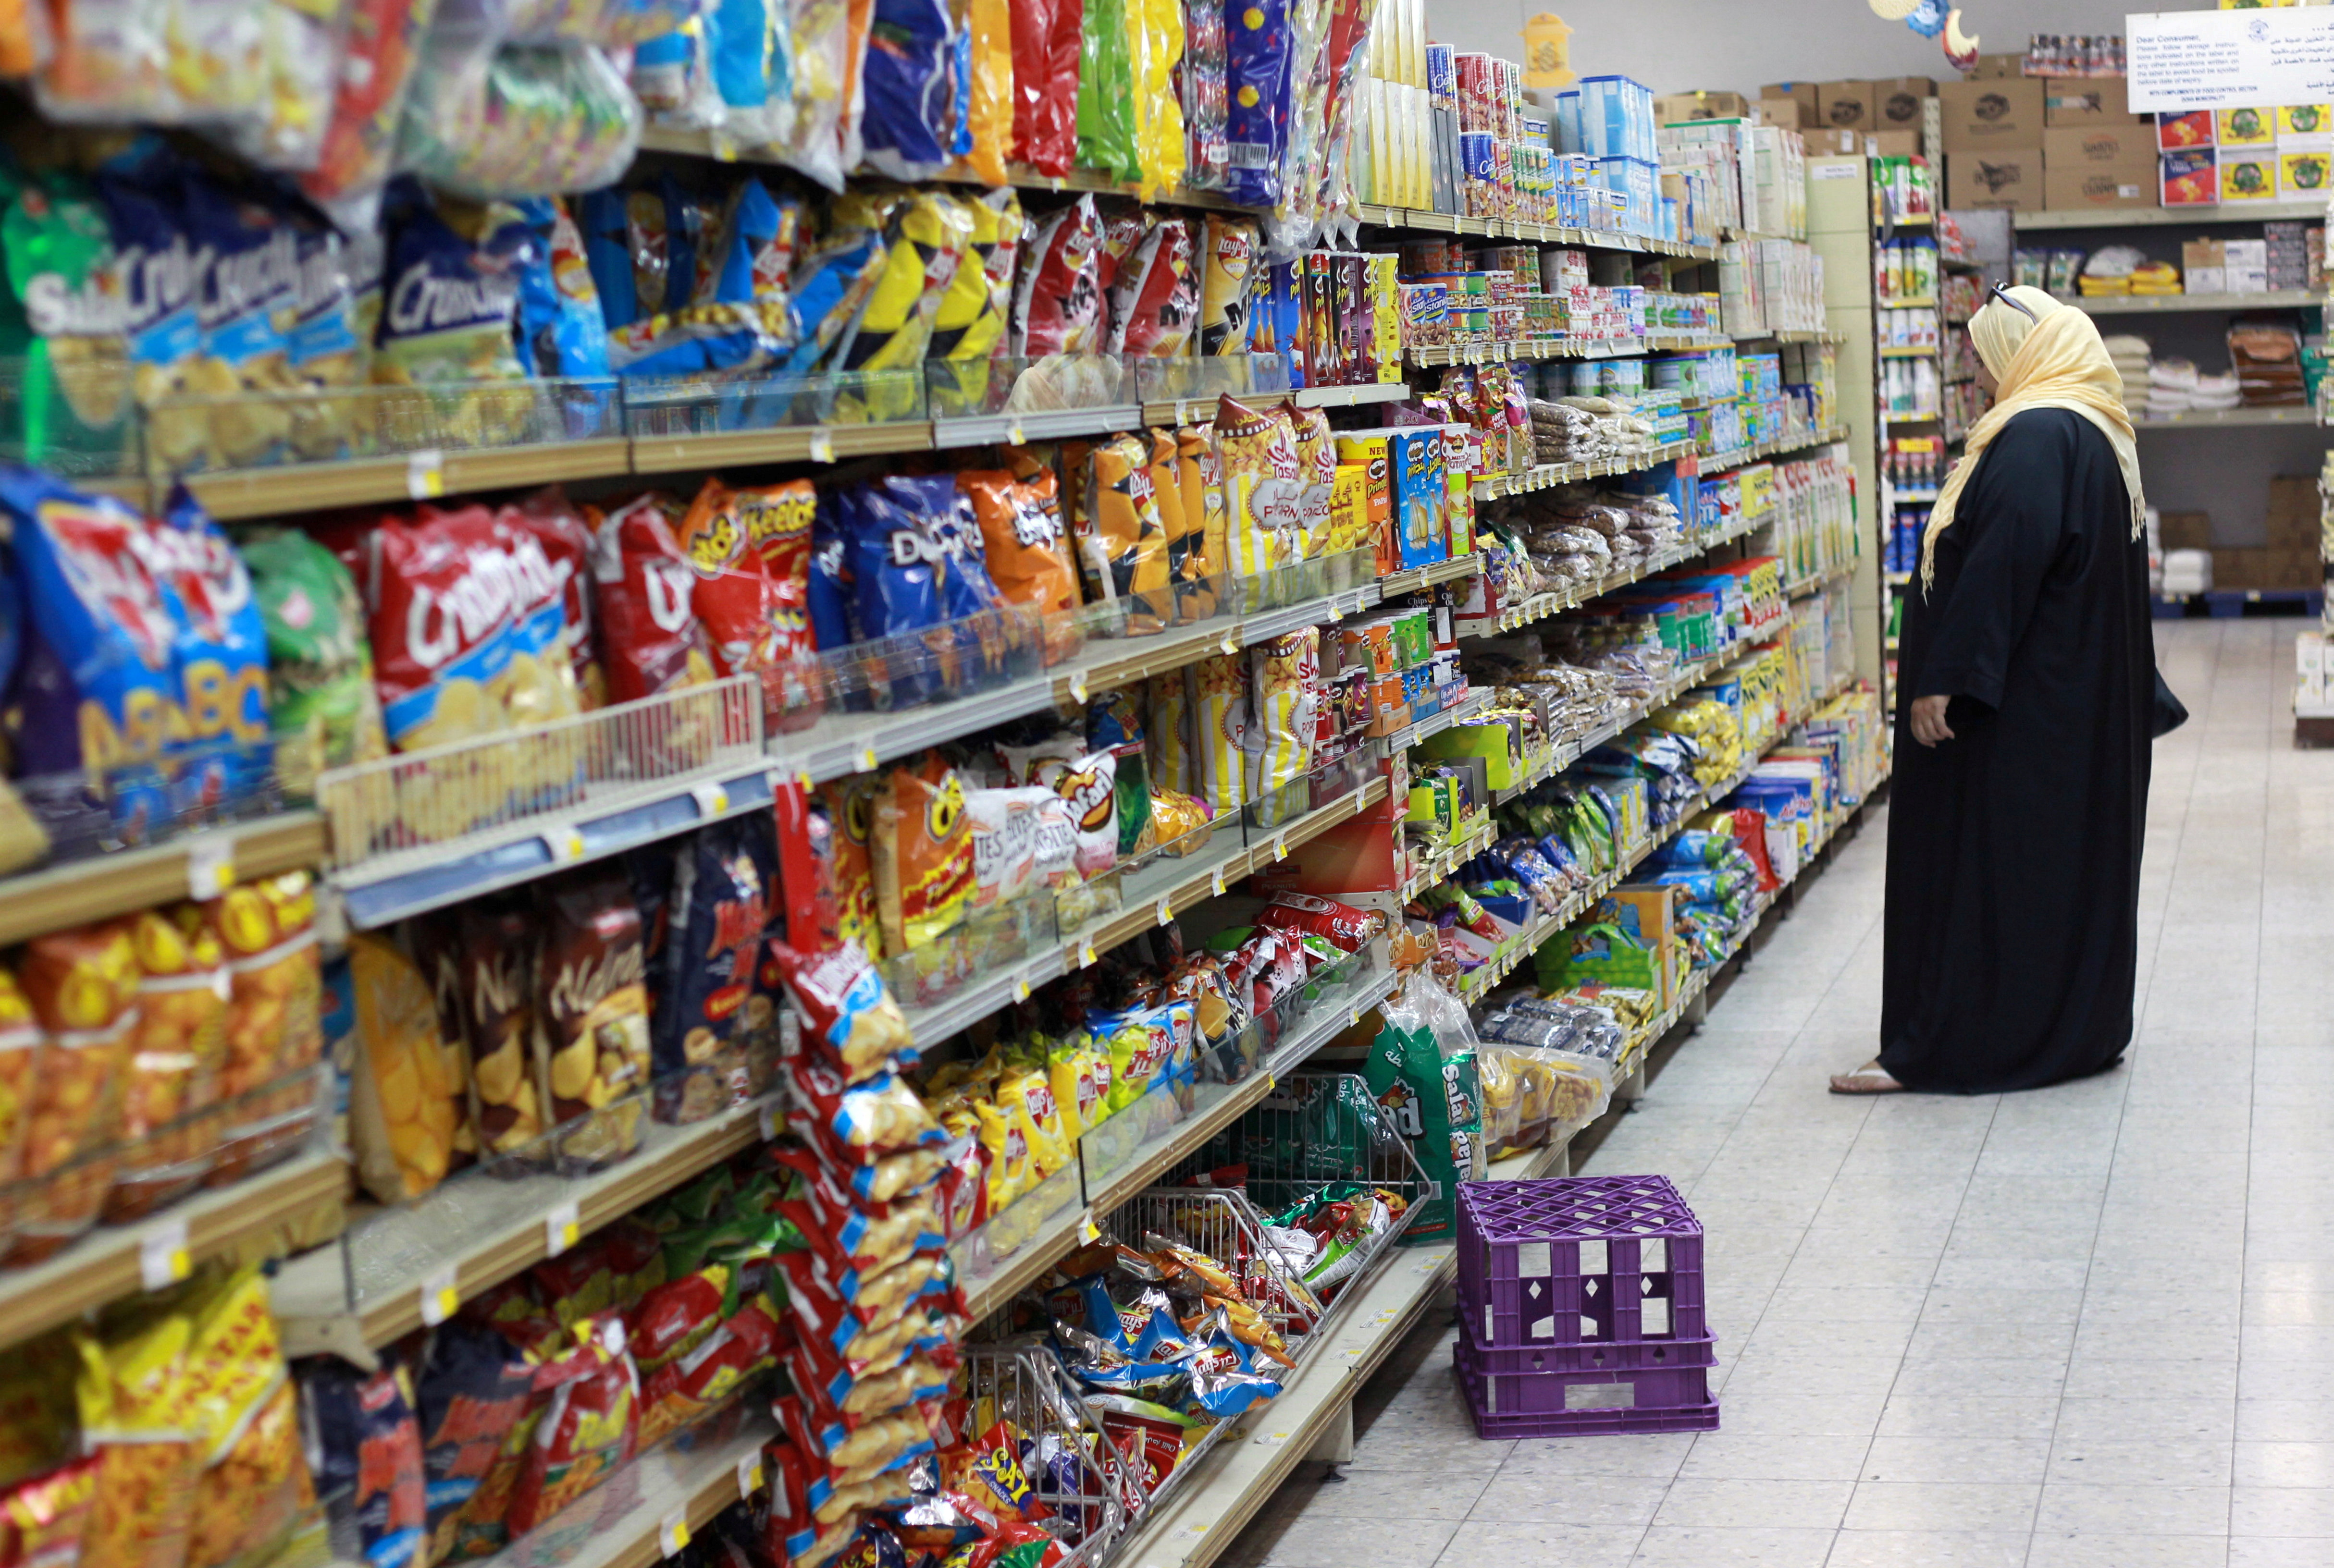 A woman shops in a supermarket in Doha, Qatar June 7, 2017. REUTERS/Stringer/